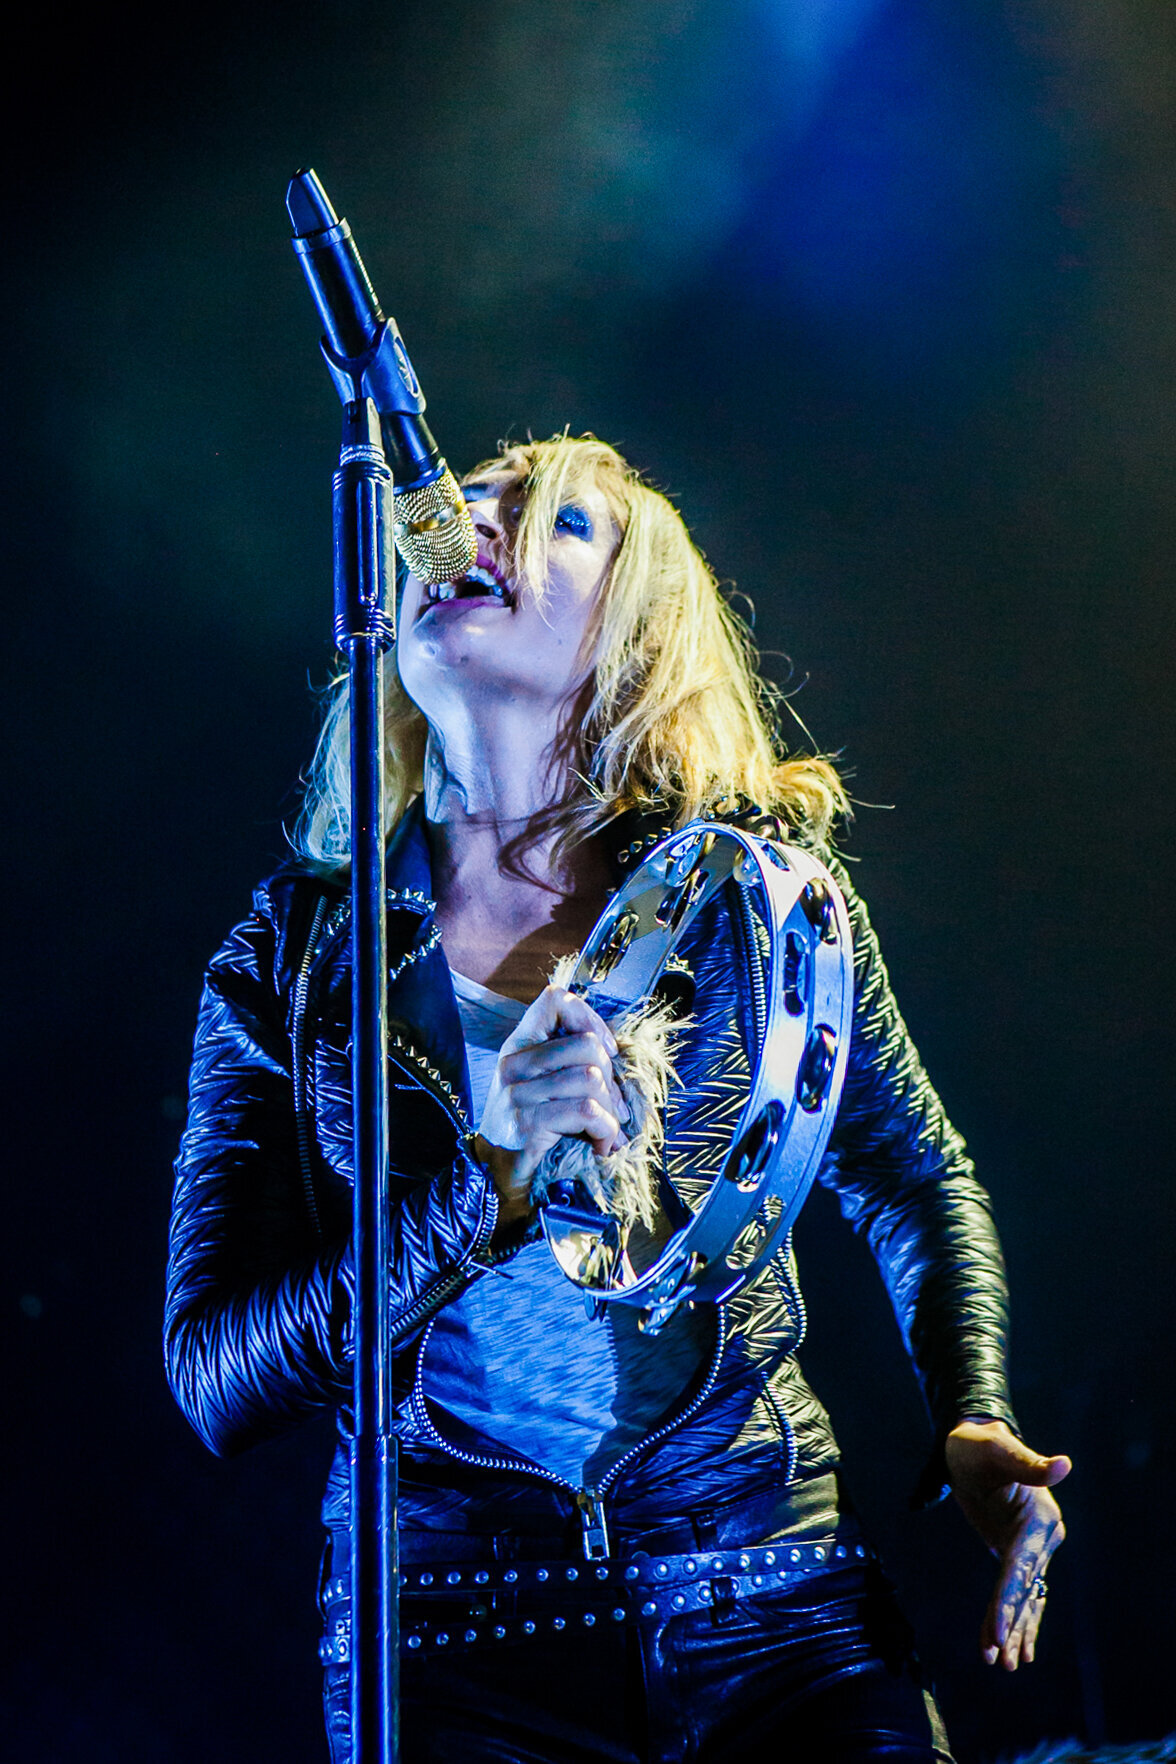 069-Metric-Hollywood-Palladium-Kelli-Hayden-